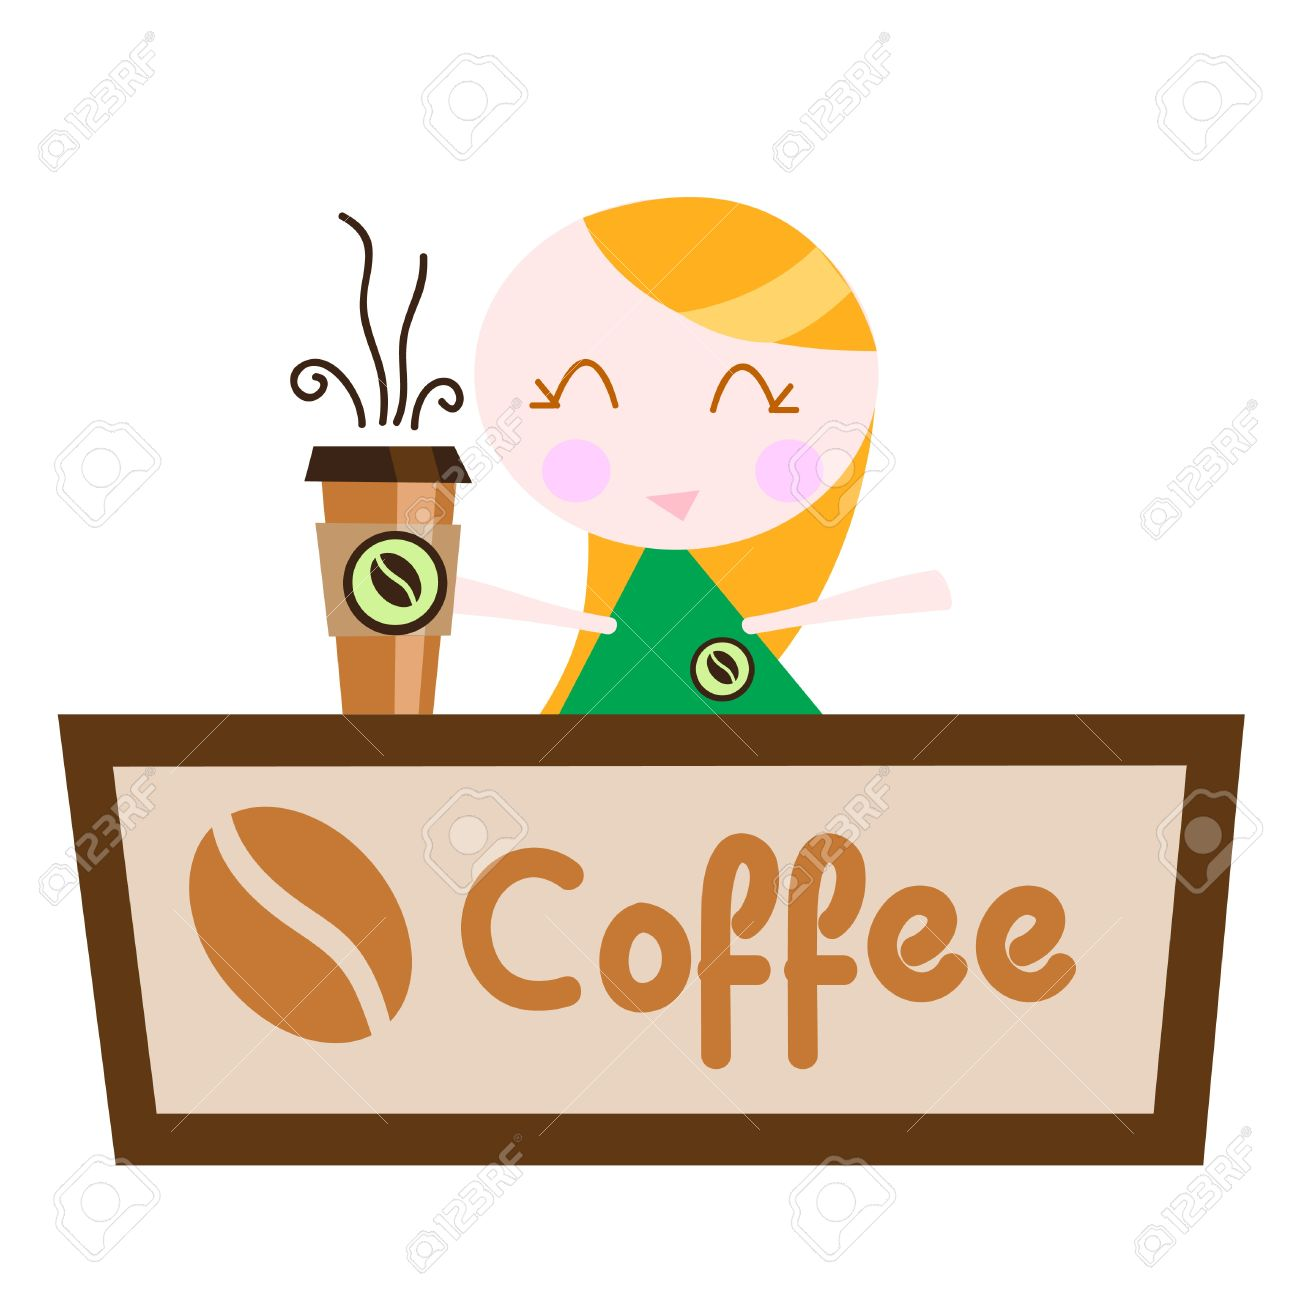 coffee shop royalty free cliparts vectors and stock illustration rh 123rf com Coffee Clip Art Coffee Clip Art